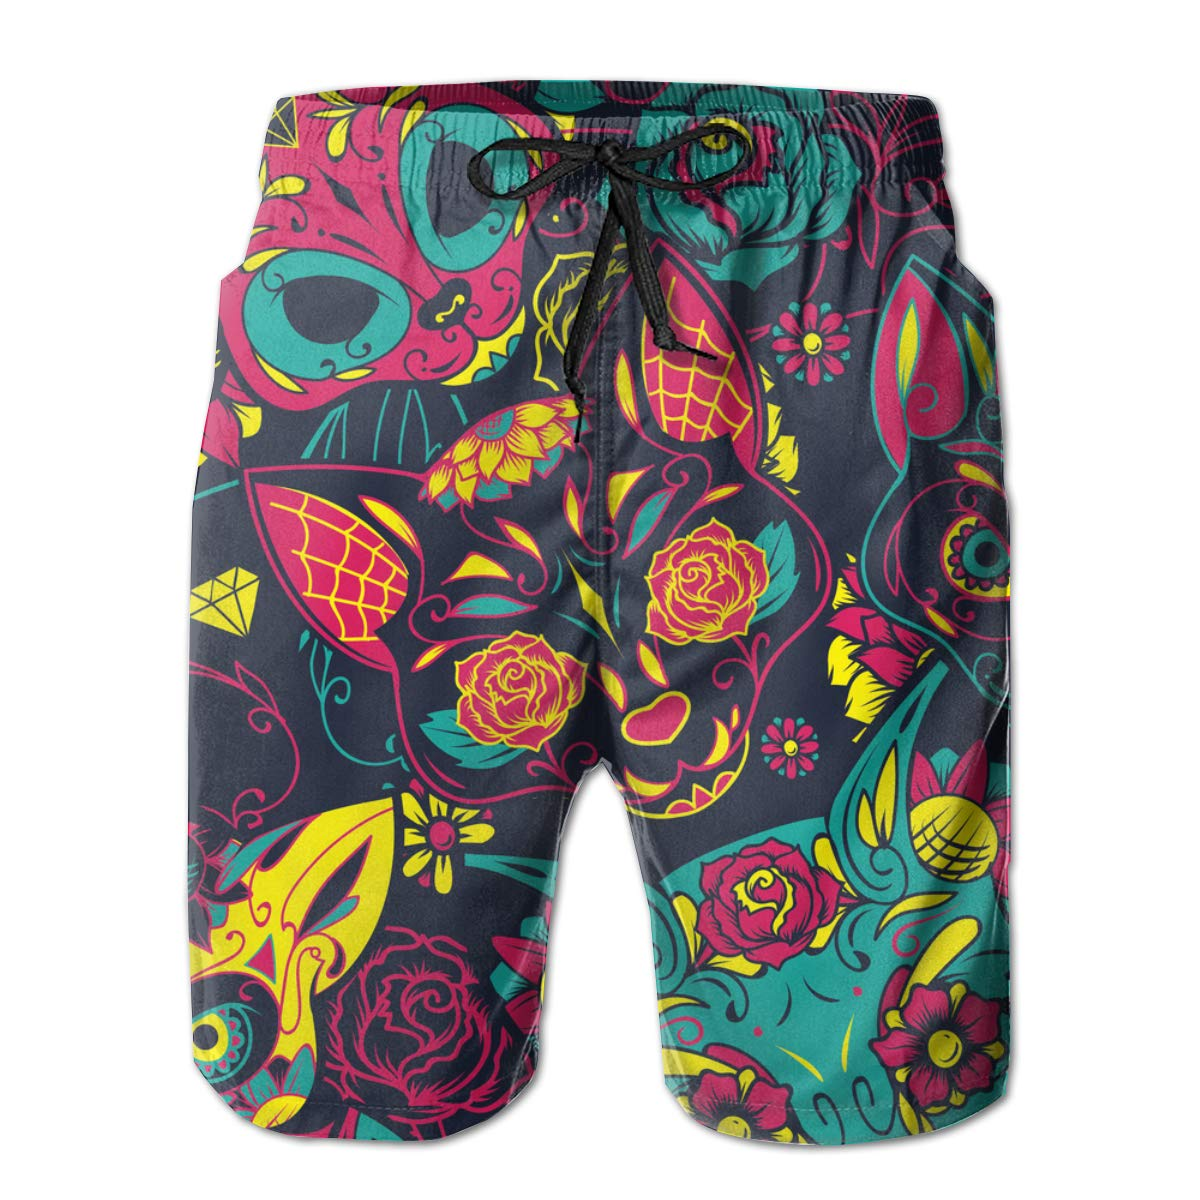 Colorful Sugar Cat Skull Mens Beach Shorts Breathable Surfing Trunks with 3 Pockets